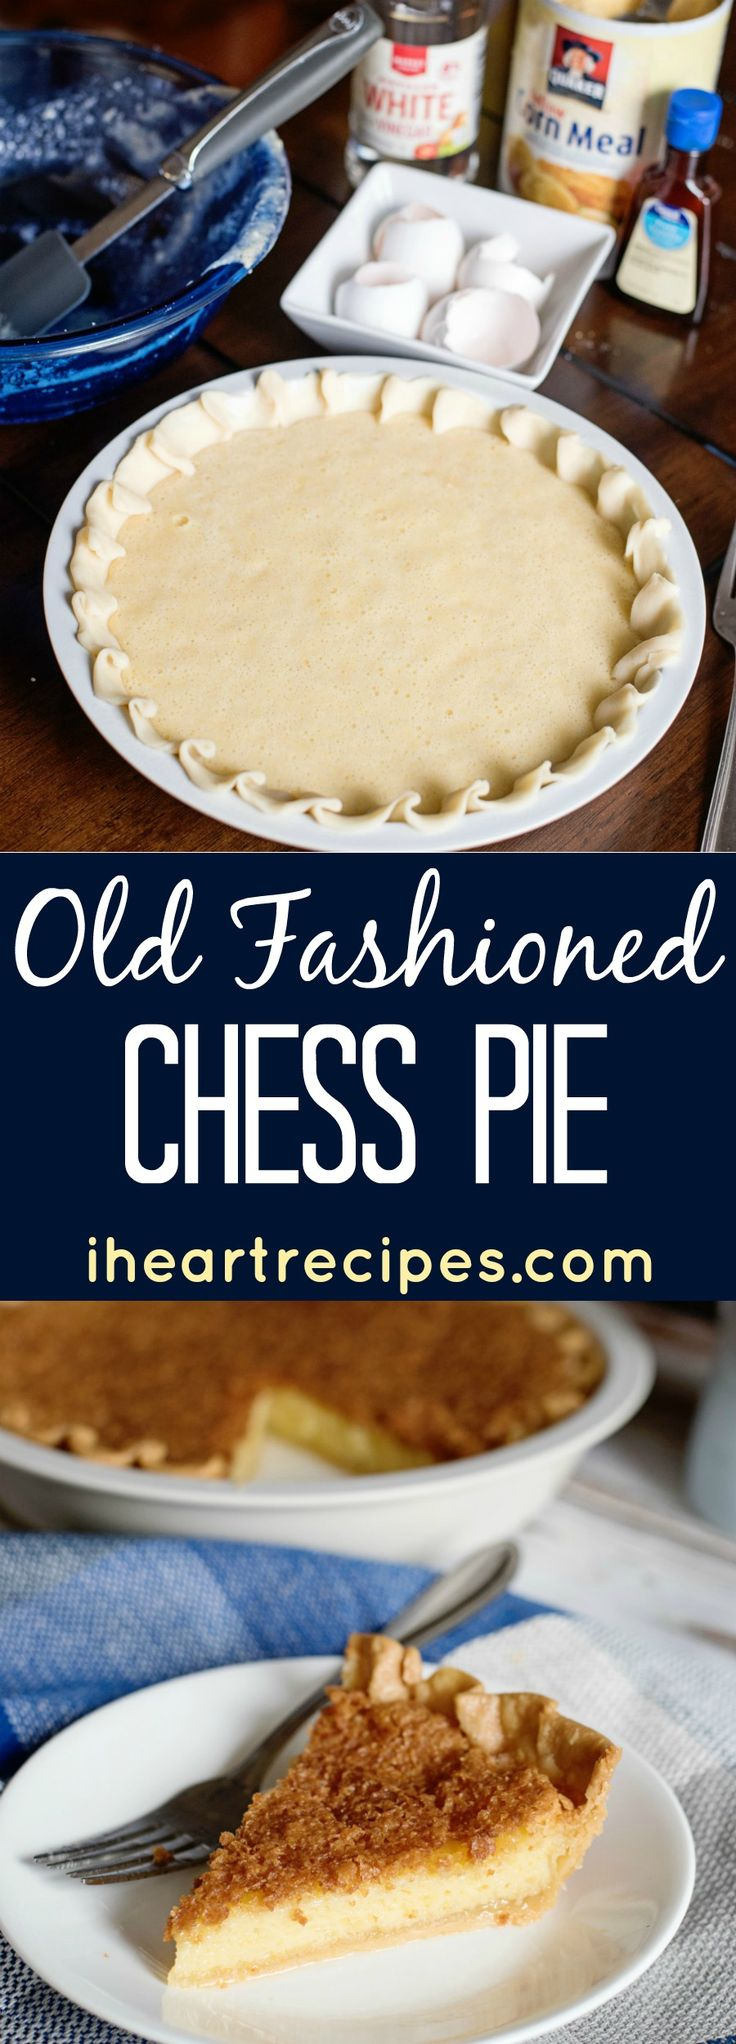 """How to make an old fashioned chess pie, not to be confused with buttermilk pie - which is very common! I couldn't tell you how many times people ask me"""" Rosie- is buttermilk pie & chess pie the same thing?!"""" I actually get questioned that several times a month. Well the answer is no. Buttermilk pie is not the same as chess pie. I shared my recipe for old fashioned buttermilk pie a few years ago, and now I'm going to show you how to make an old fashioned chess pie! Now, I..."""